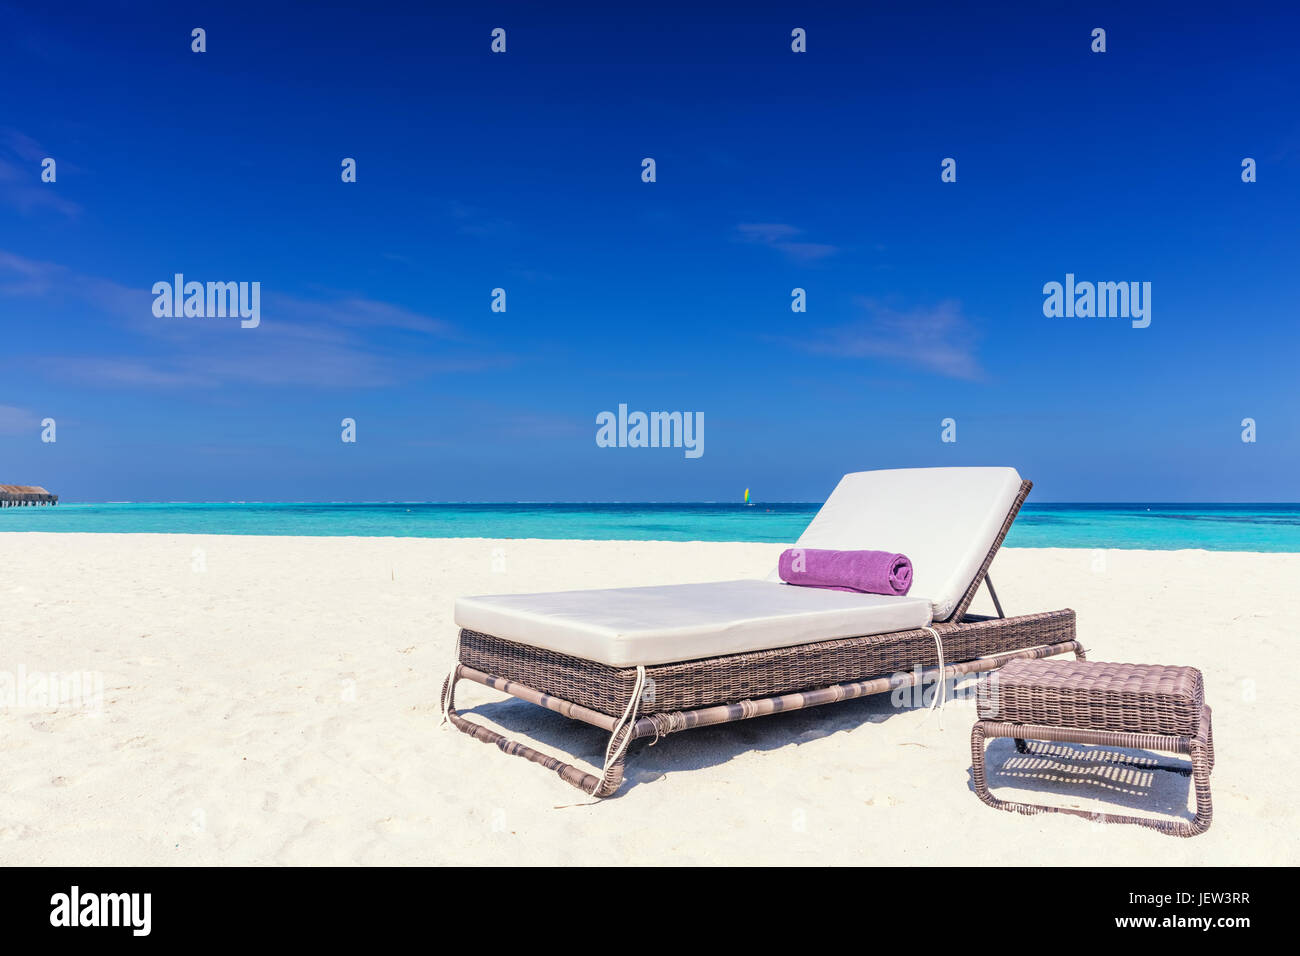 Aux Resort Island Longue Un Beacha Tropical Sur Sandy Petit Chaise HW9YEDI2